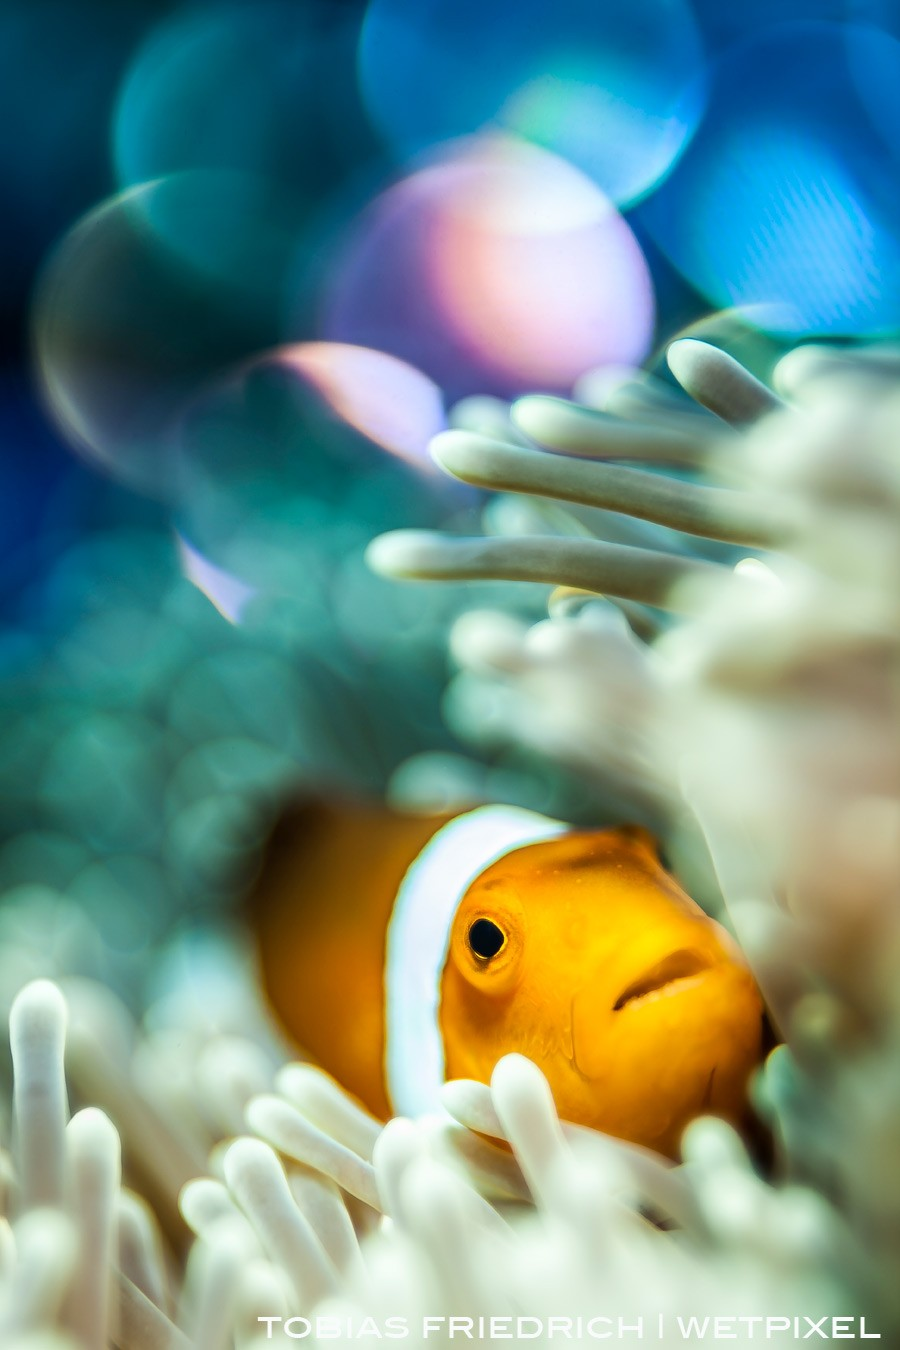 A clownfish (*Amphiprion ocellaris*) nestled in its host anemone with a bokeh background